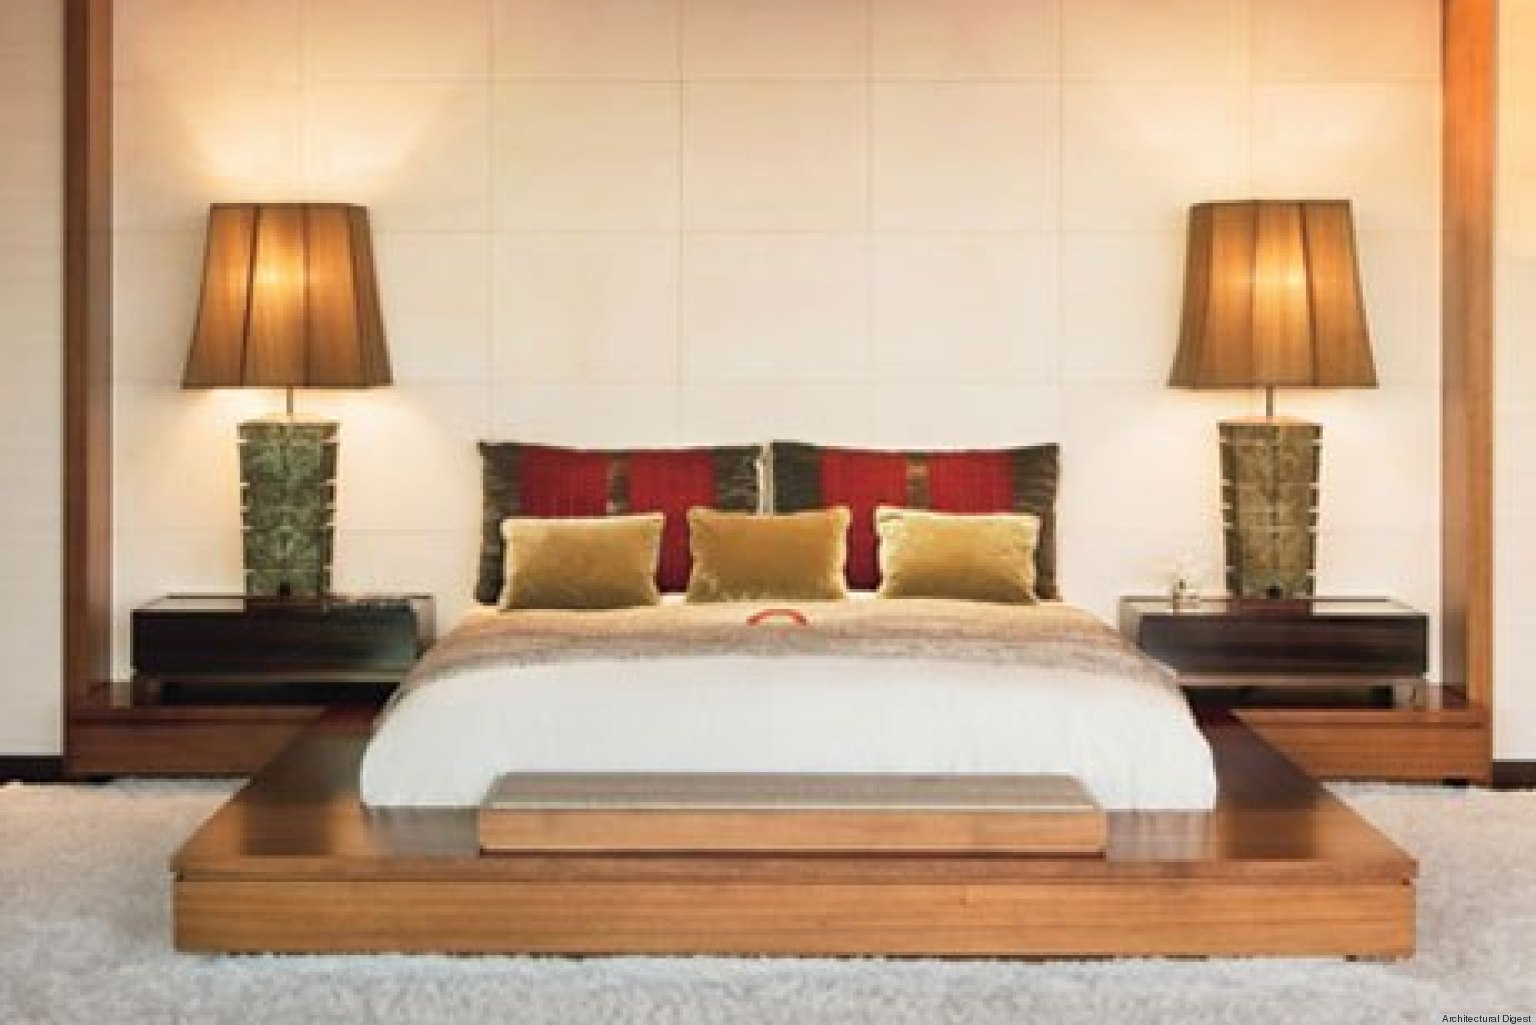 10 celebrity bedrooms from architectural digest that we for Bedroom photos